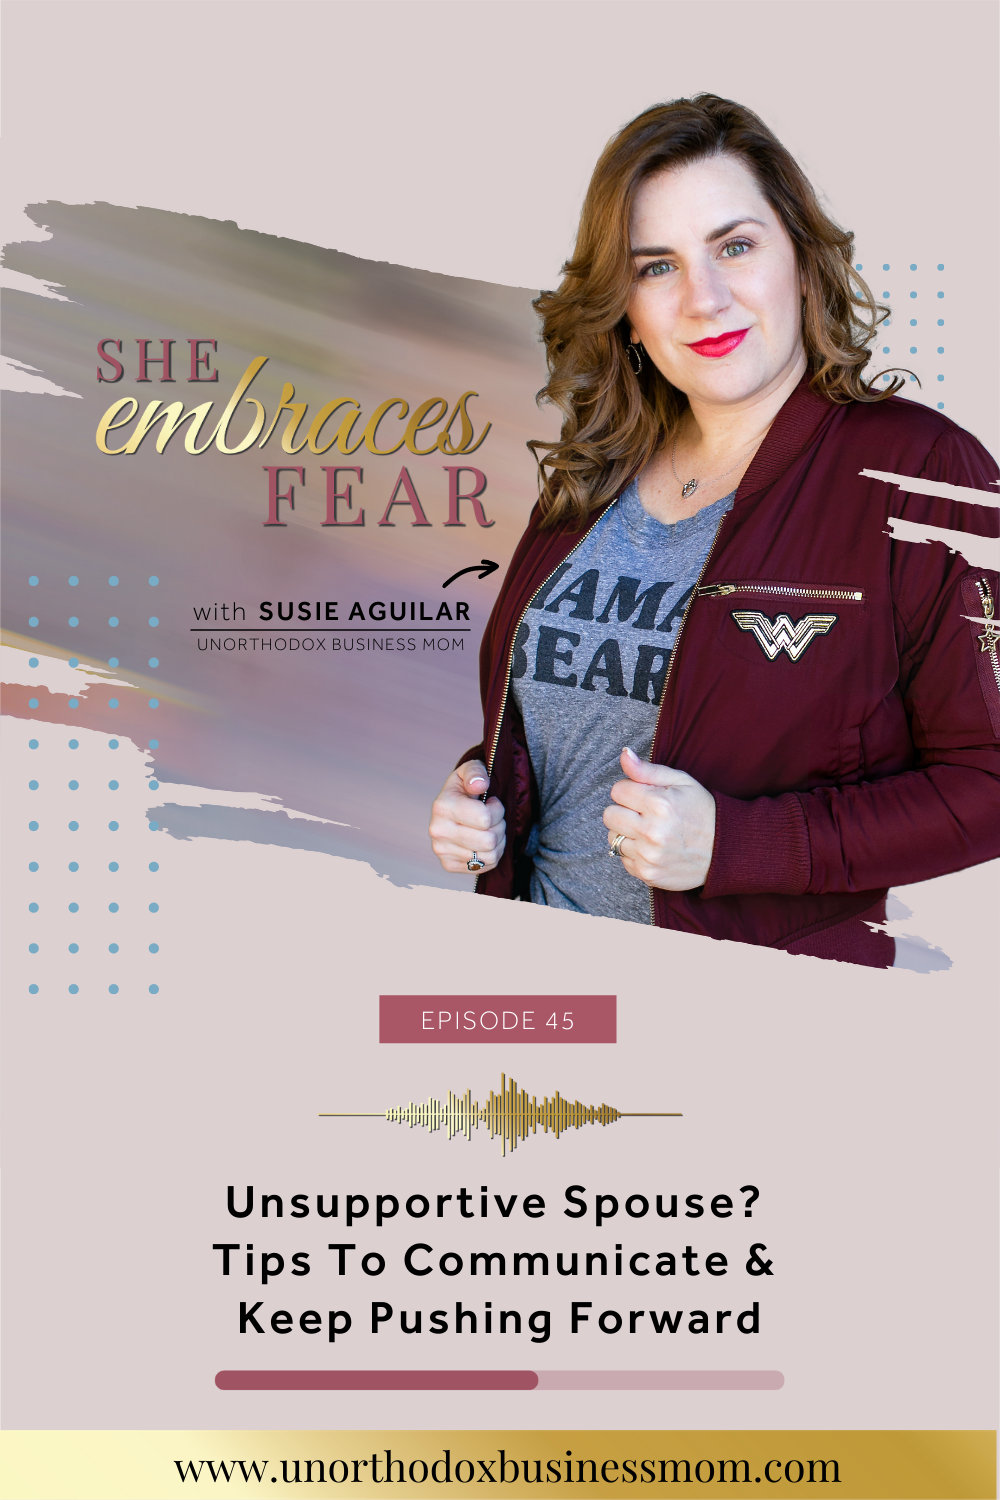 Feel like your spouse doesn't get you? They don't understand your ambitions or why you want to switch paths? Keep a healthy marriage and pursue your goals.